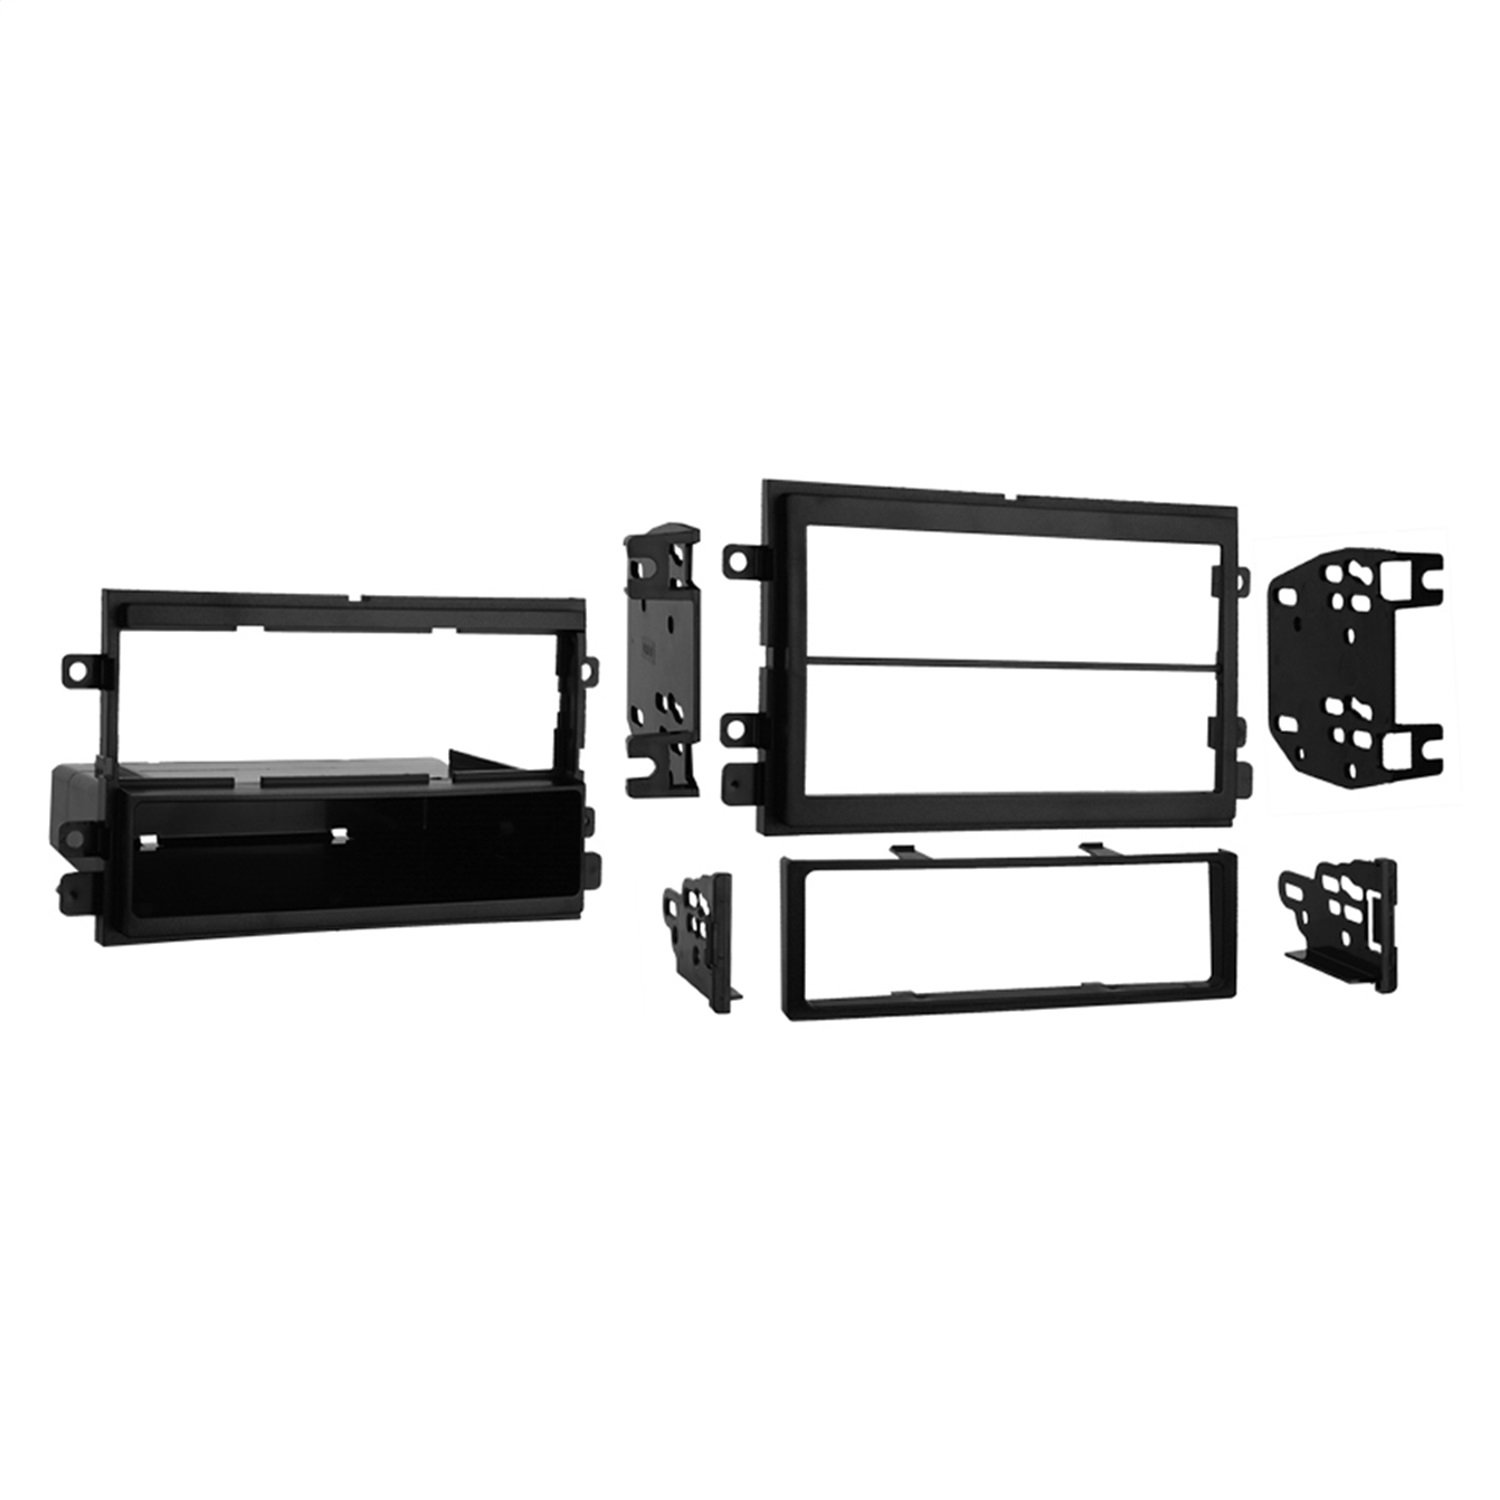 Metra 99-5807 Single DIN/Double DIN Installation Kit for Select 1974 8211, 2003 Ford/Mercury Vehicles (Black) Metra Electronics Corporation